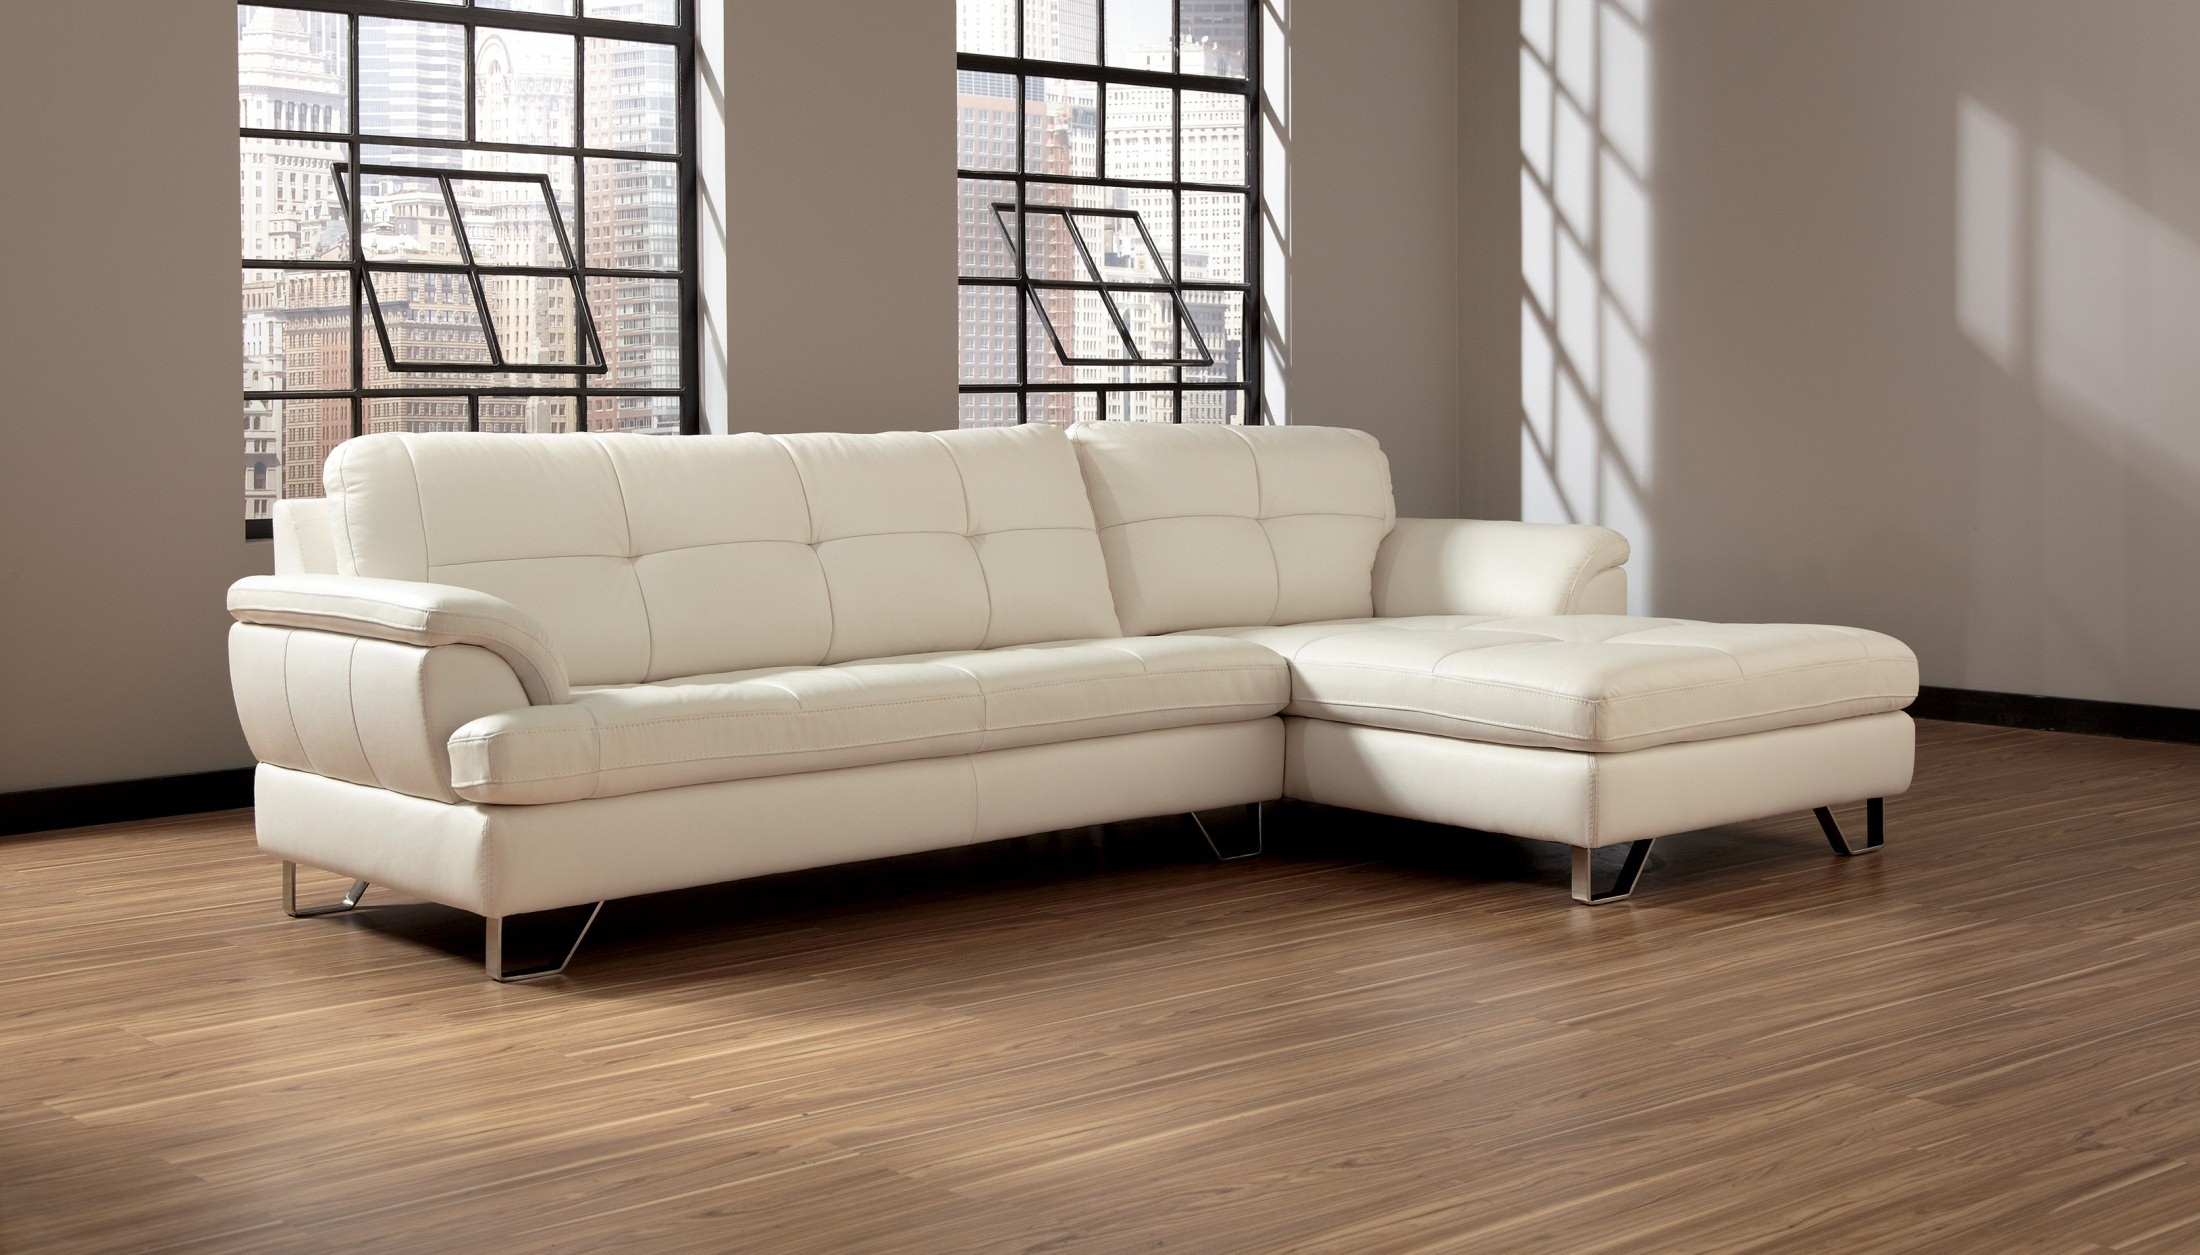 Gunter Brilliant White Sectional, U81300-55-17, Signature Design